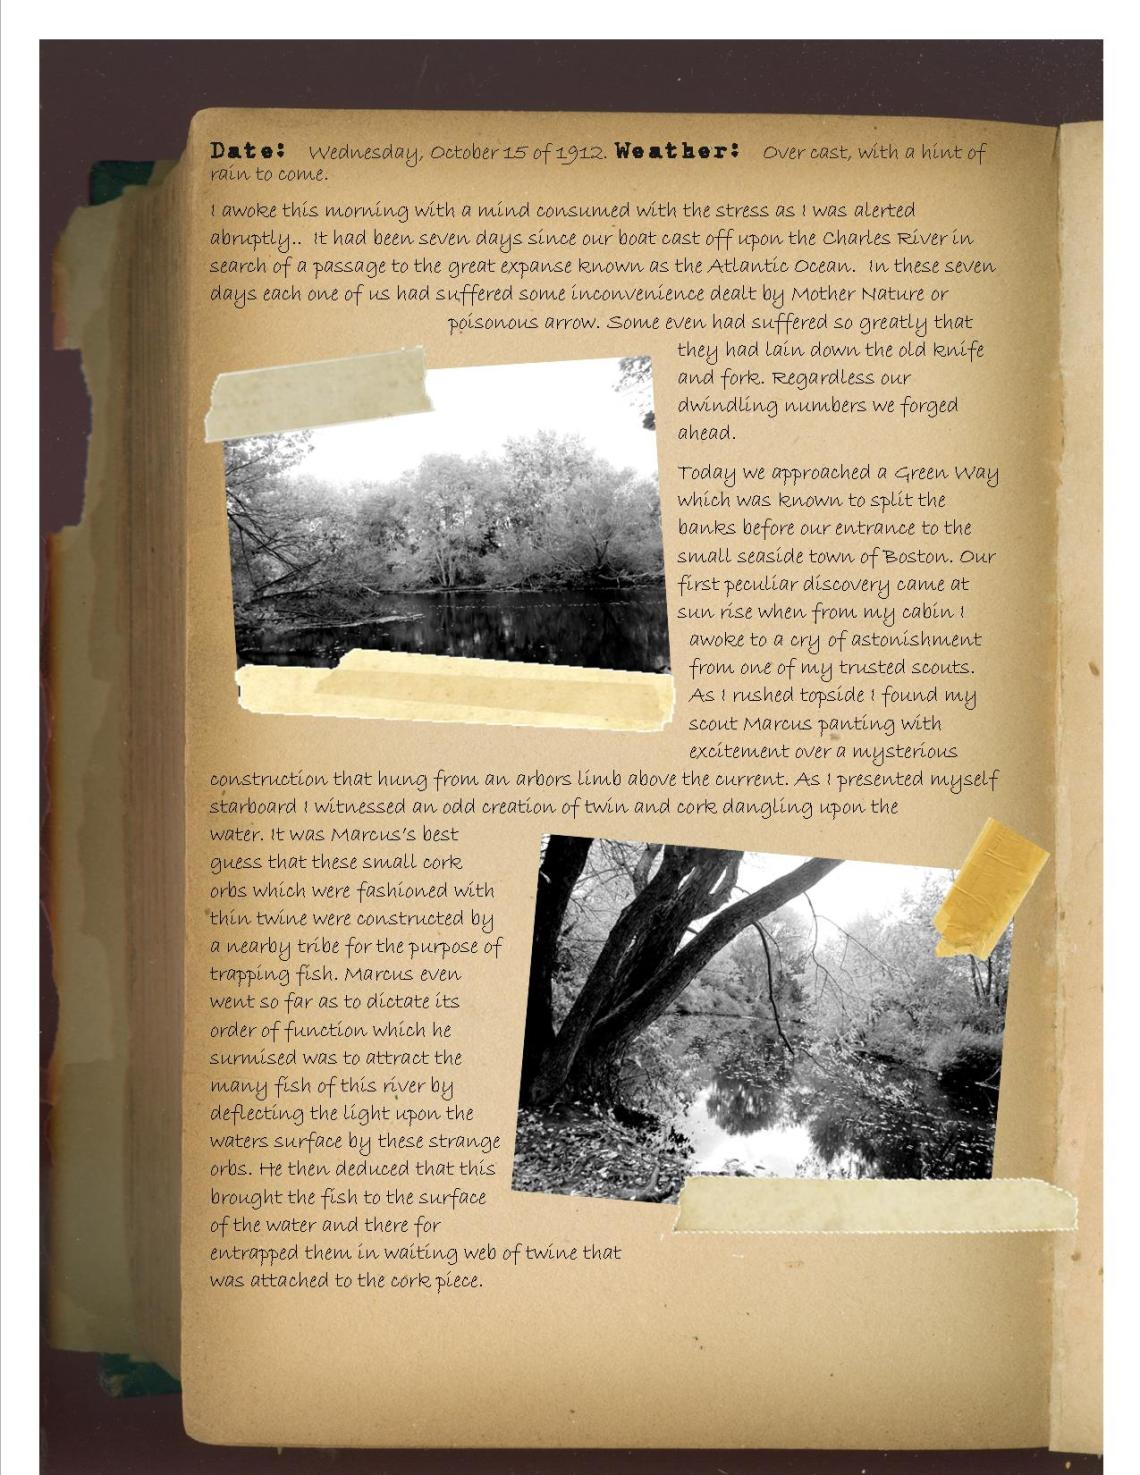 Journal entry greenway)